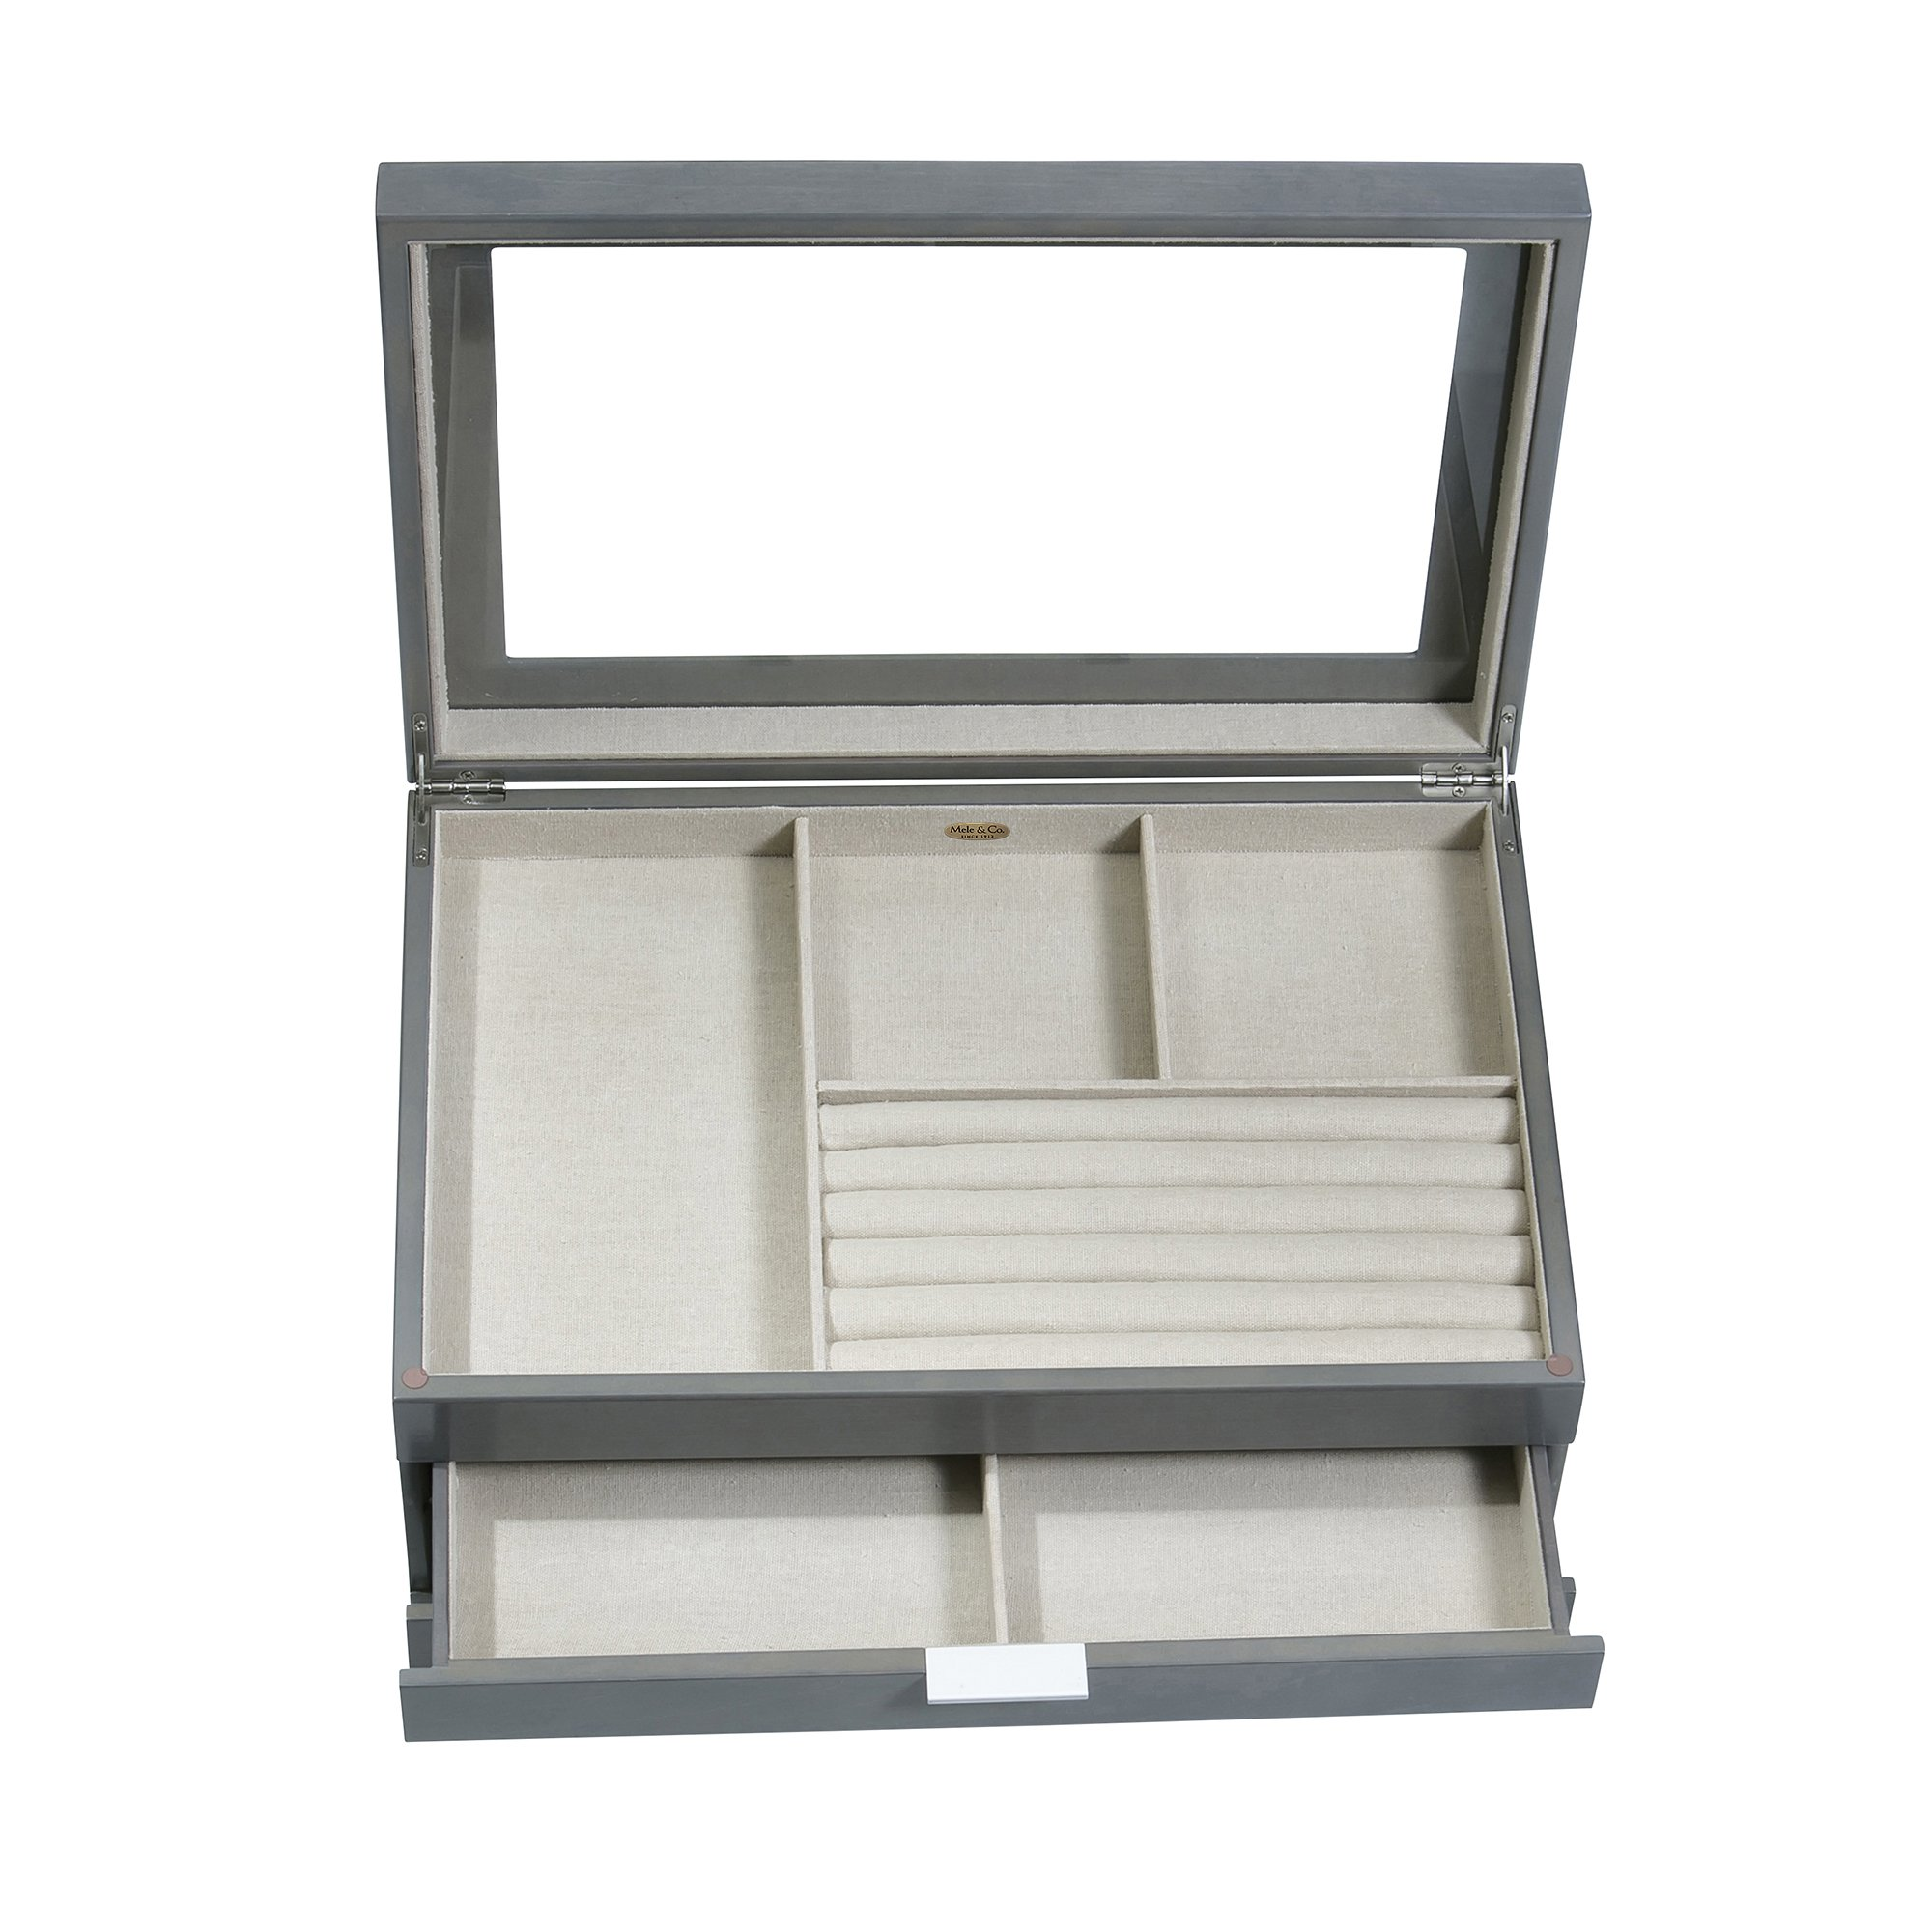 Mele & Co. Misty Glass Top Wooden Jewelry Box (Oceanside Grey Finish) by Mele & Co. (Image #6)